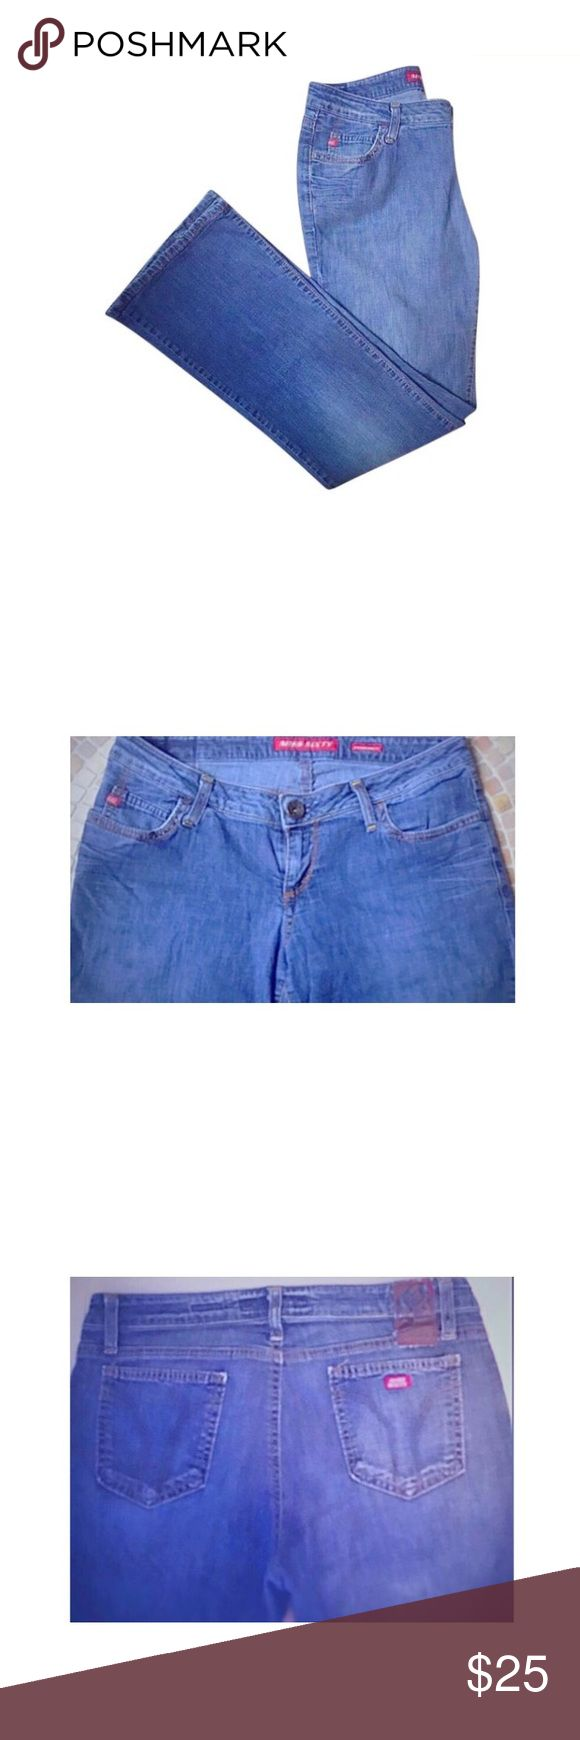 Miss Sixty Jeans 🎀 Soft Jean Condition: Used / Good. // Blue Jean is really soft, light weight, & comfortable. // Color: Light Blue Jean. // Made in Italy 🇮🇹 // 98% Cotton. Miss Sixty Jeans Flare & Wide Leg